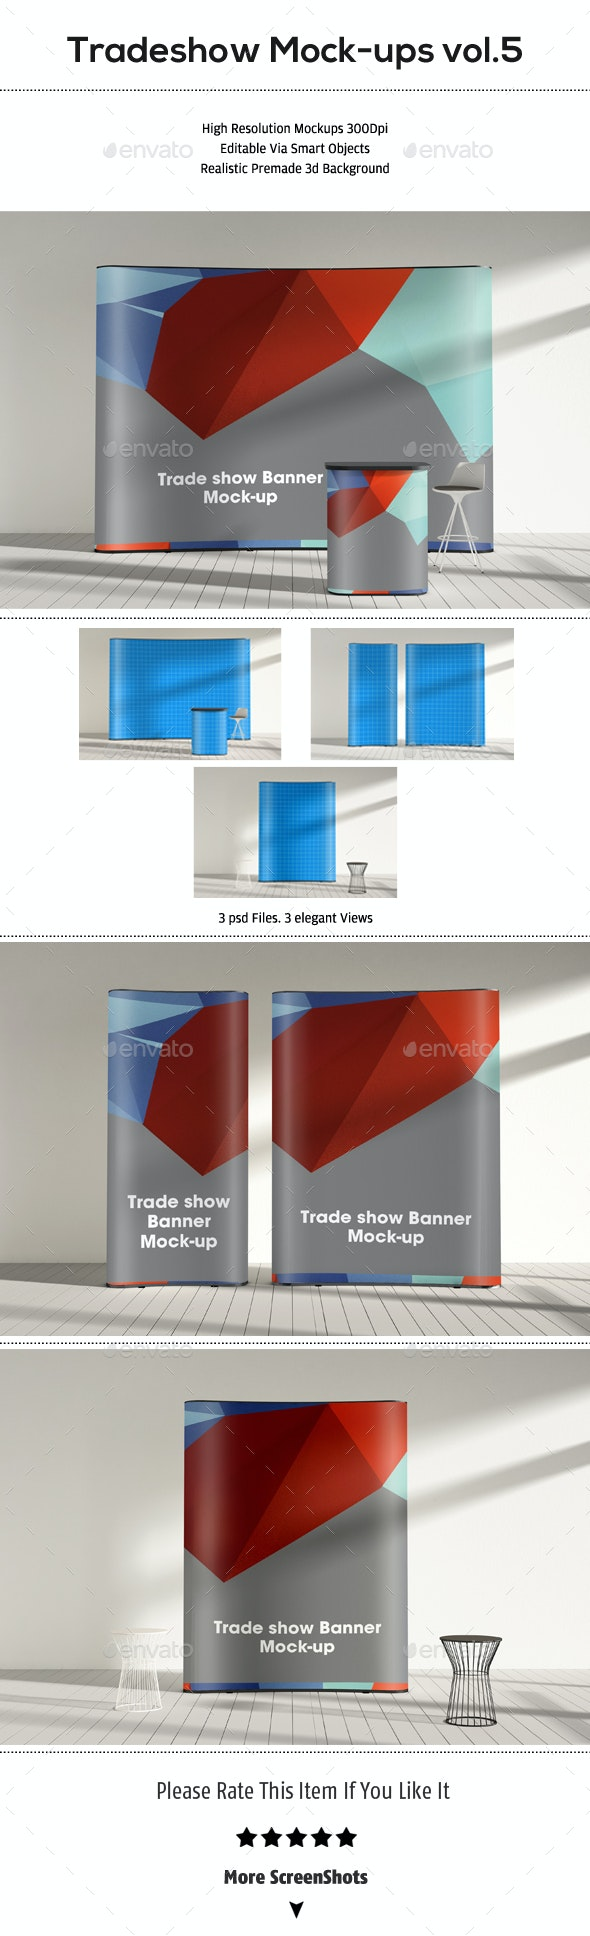 Trade-show Display Booth Mock-up vol.05 - Product Mock-Ups Graphics